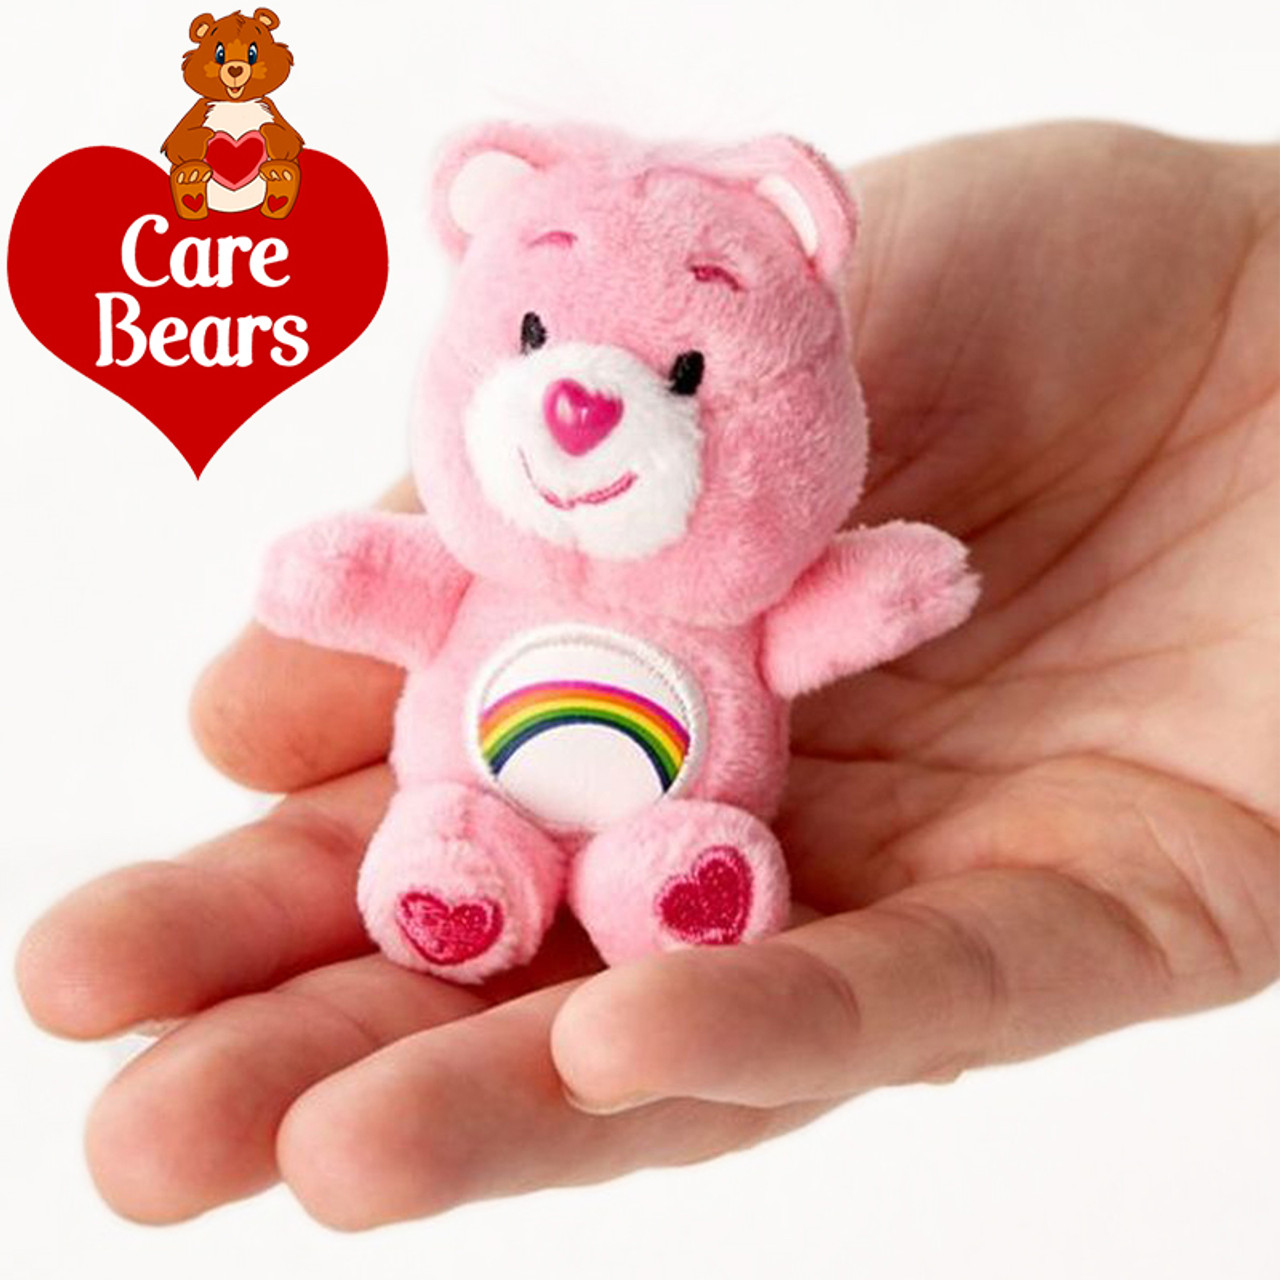 Official Worlds Smallest Care Bear